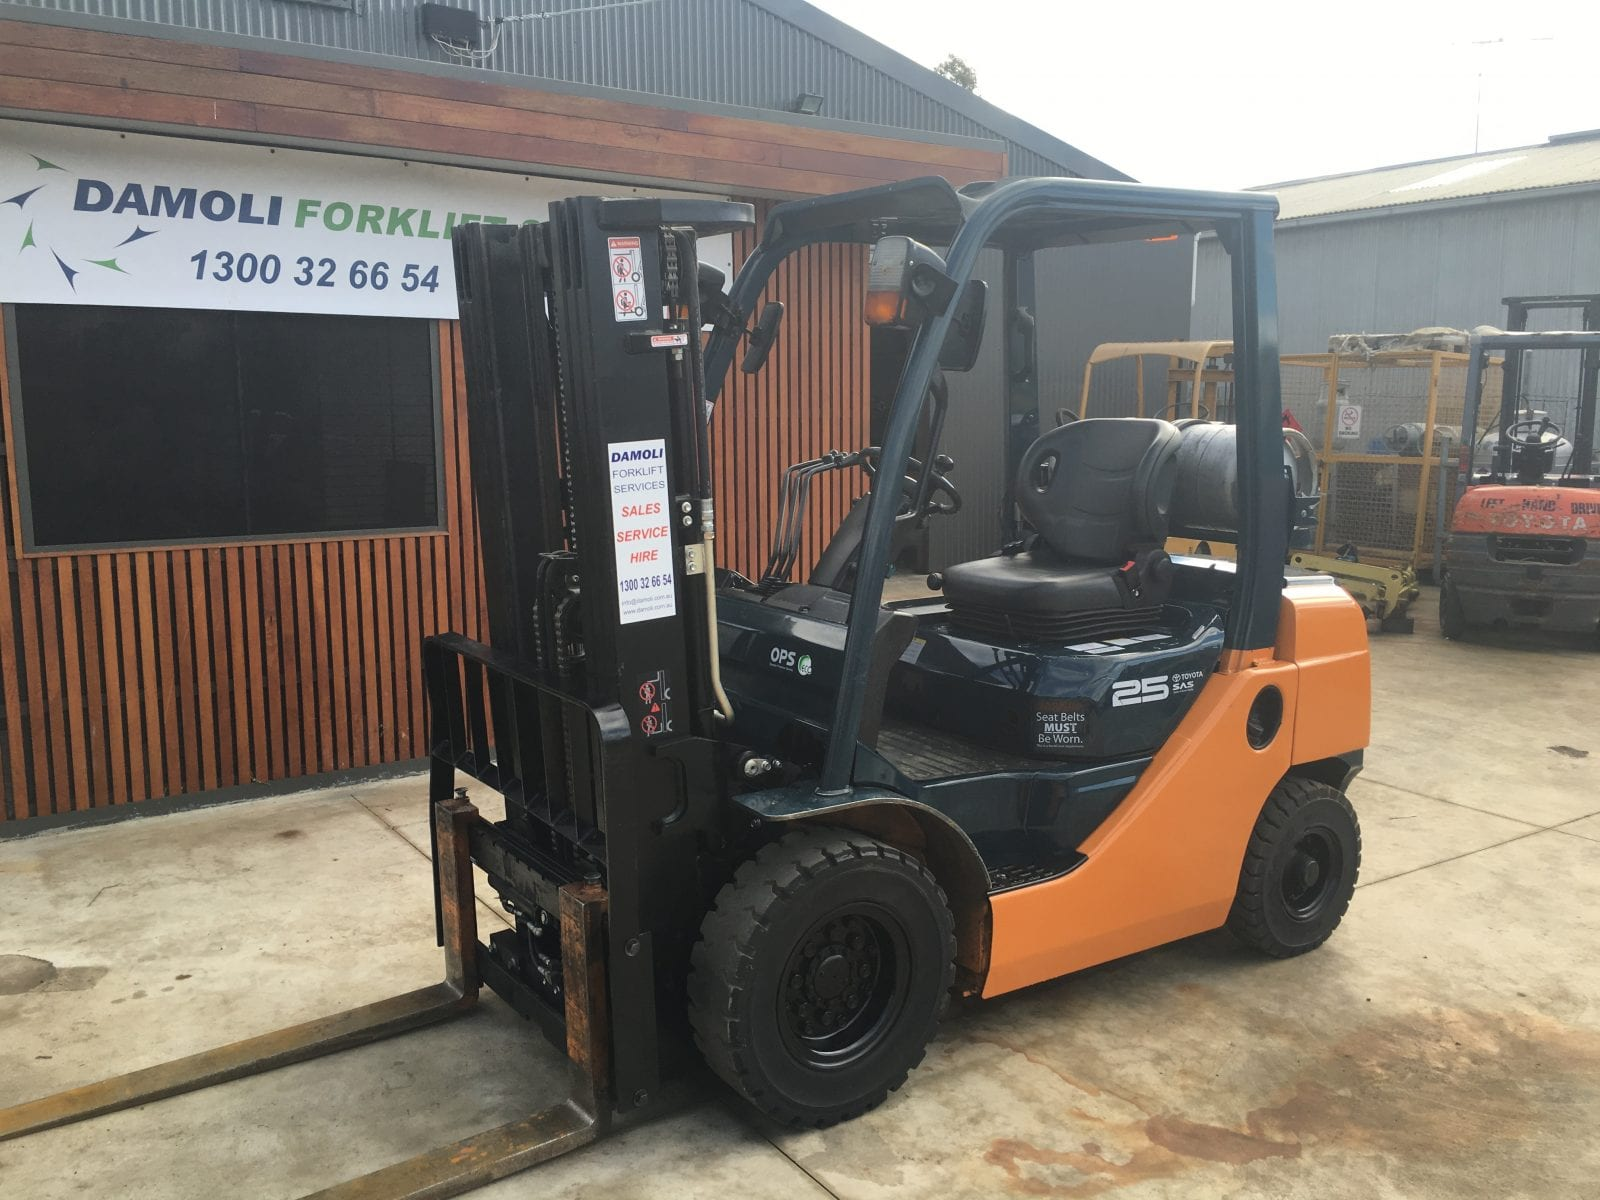 Container Mast Toyota Forklift, On-site Servicing and Maintenance included in Weekly Hire Price, Side Shift, Fork Positioner, Toyota Forklift Hire Campbellfield, Toyota Forklift Hire CBD, Toyota Forklift Hire Dandenong, Toyota Forklift Hire Geelong, Toyota Forklift Hire Laverton, Toyota Forklift Hire Melbourne, Toyota Forklift Hire Melton, Toyota Forklift Hire Victoria, Toyota Forklift Hire Werribee, Toyota Forklift Hire Derrimut, Toyota Forklift Hire Sunshine, Toyota Forklift Hire Maribyrnong, Toyota Forklift Hire Essendon, Toyota Forklift Hire Moonee Ponds, Toyota Forklift Hire Coburg, Toyota Forklift Hire Airport West, Toyota Forklift Hire Kew, Toyota Forklift Hire Footscray, Toyota Forklift Hire Northcote, Toyota Forklift Hire Thornbury, Toyota Forklift Hire Reservoir, Toyota Forklift Hire Thomastown, Toyota Forklift Hire Epping, Toyota Forklift Hire South Morang, Toyota Forklift Hire Keysborough, Toyota Forklift Hire Ringwood, Toyota Forklift Hire Bayswater, Toyota Forklift Hire Balwyn, Toyota Forklift Hire Doncaster, Toyota Forklift Hire Blackburn, Toyota Forklift Hire Flemington, Toyota Forklift Hire Kensington, Toyota Forklift Hire Fitzroy, Toyota Forklift Hire Newport, Toyota Forklift Hire Williamstown, Toyota Forklift Hire Brimbank, Toyota Forklift Hire Altona, Toyota Forklift Hire Hoppers Crossing, Toyota Forklift Hire Tullamarine, Toyota Forklift Hire Keilor, Toyota Forklift Hire Broadmeadows, Toyota Forklift Hire Westmeadows, Toyota Forklift Hire Caroline Springs, Toyota Forklift Hire Tarneit, Toyota Forklift Hire Point Cook, Toyota Forklift Hire Pascoe Vale, Toyota Forklift Hire Glenroy, Toyota Forklift Hire Gladstone Park, Toyota Forklift Hire Taylors Lakes, Toyota Forklift Hire Sydenham, Toyota Forklift Hire Rockbank, Toyota Forklift Hire Craigieburn, Toyota Forklift Hire Kalkallo, Toyota Forklift Hire Donnybrook,